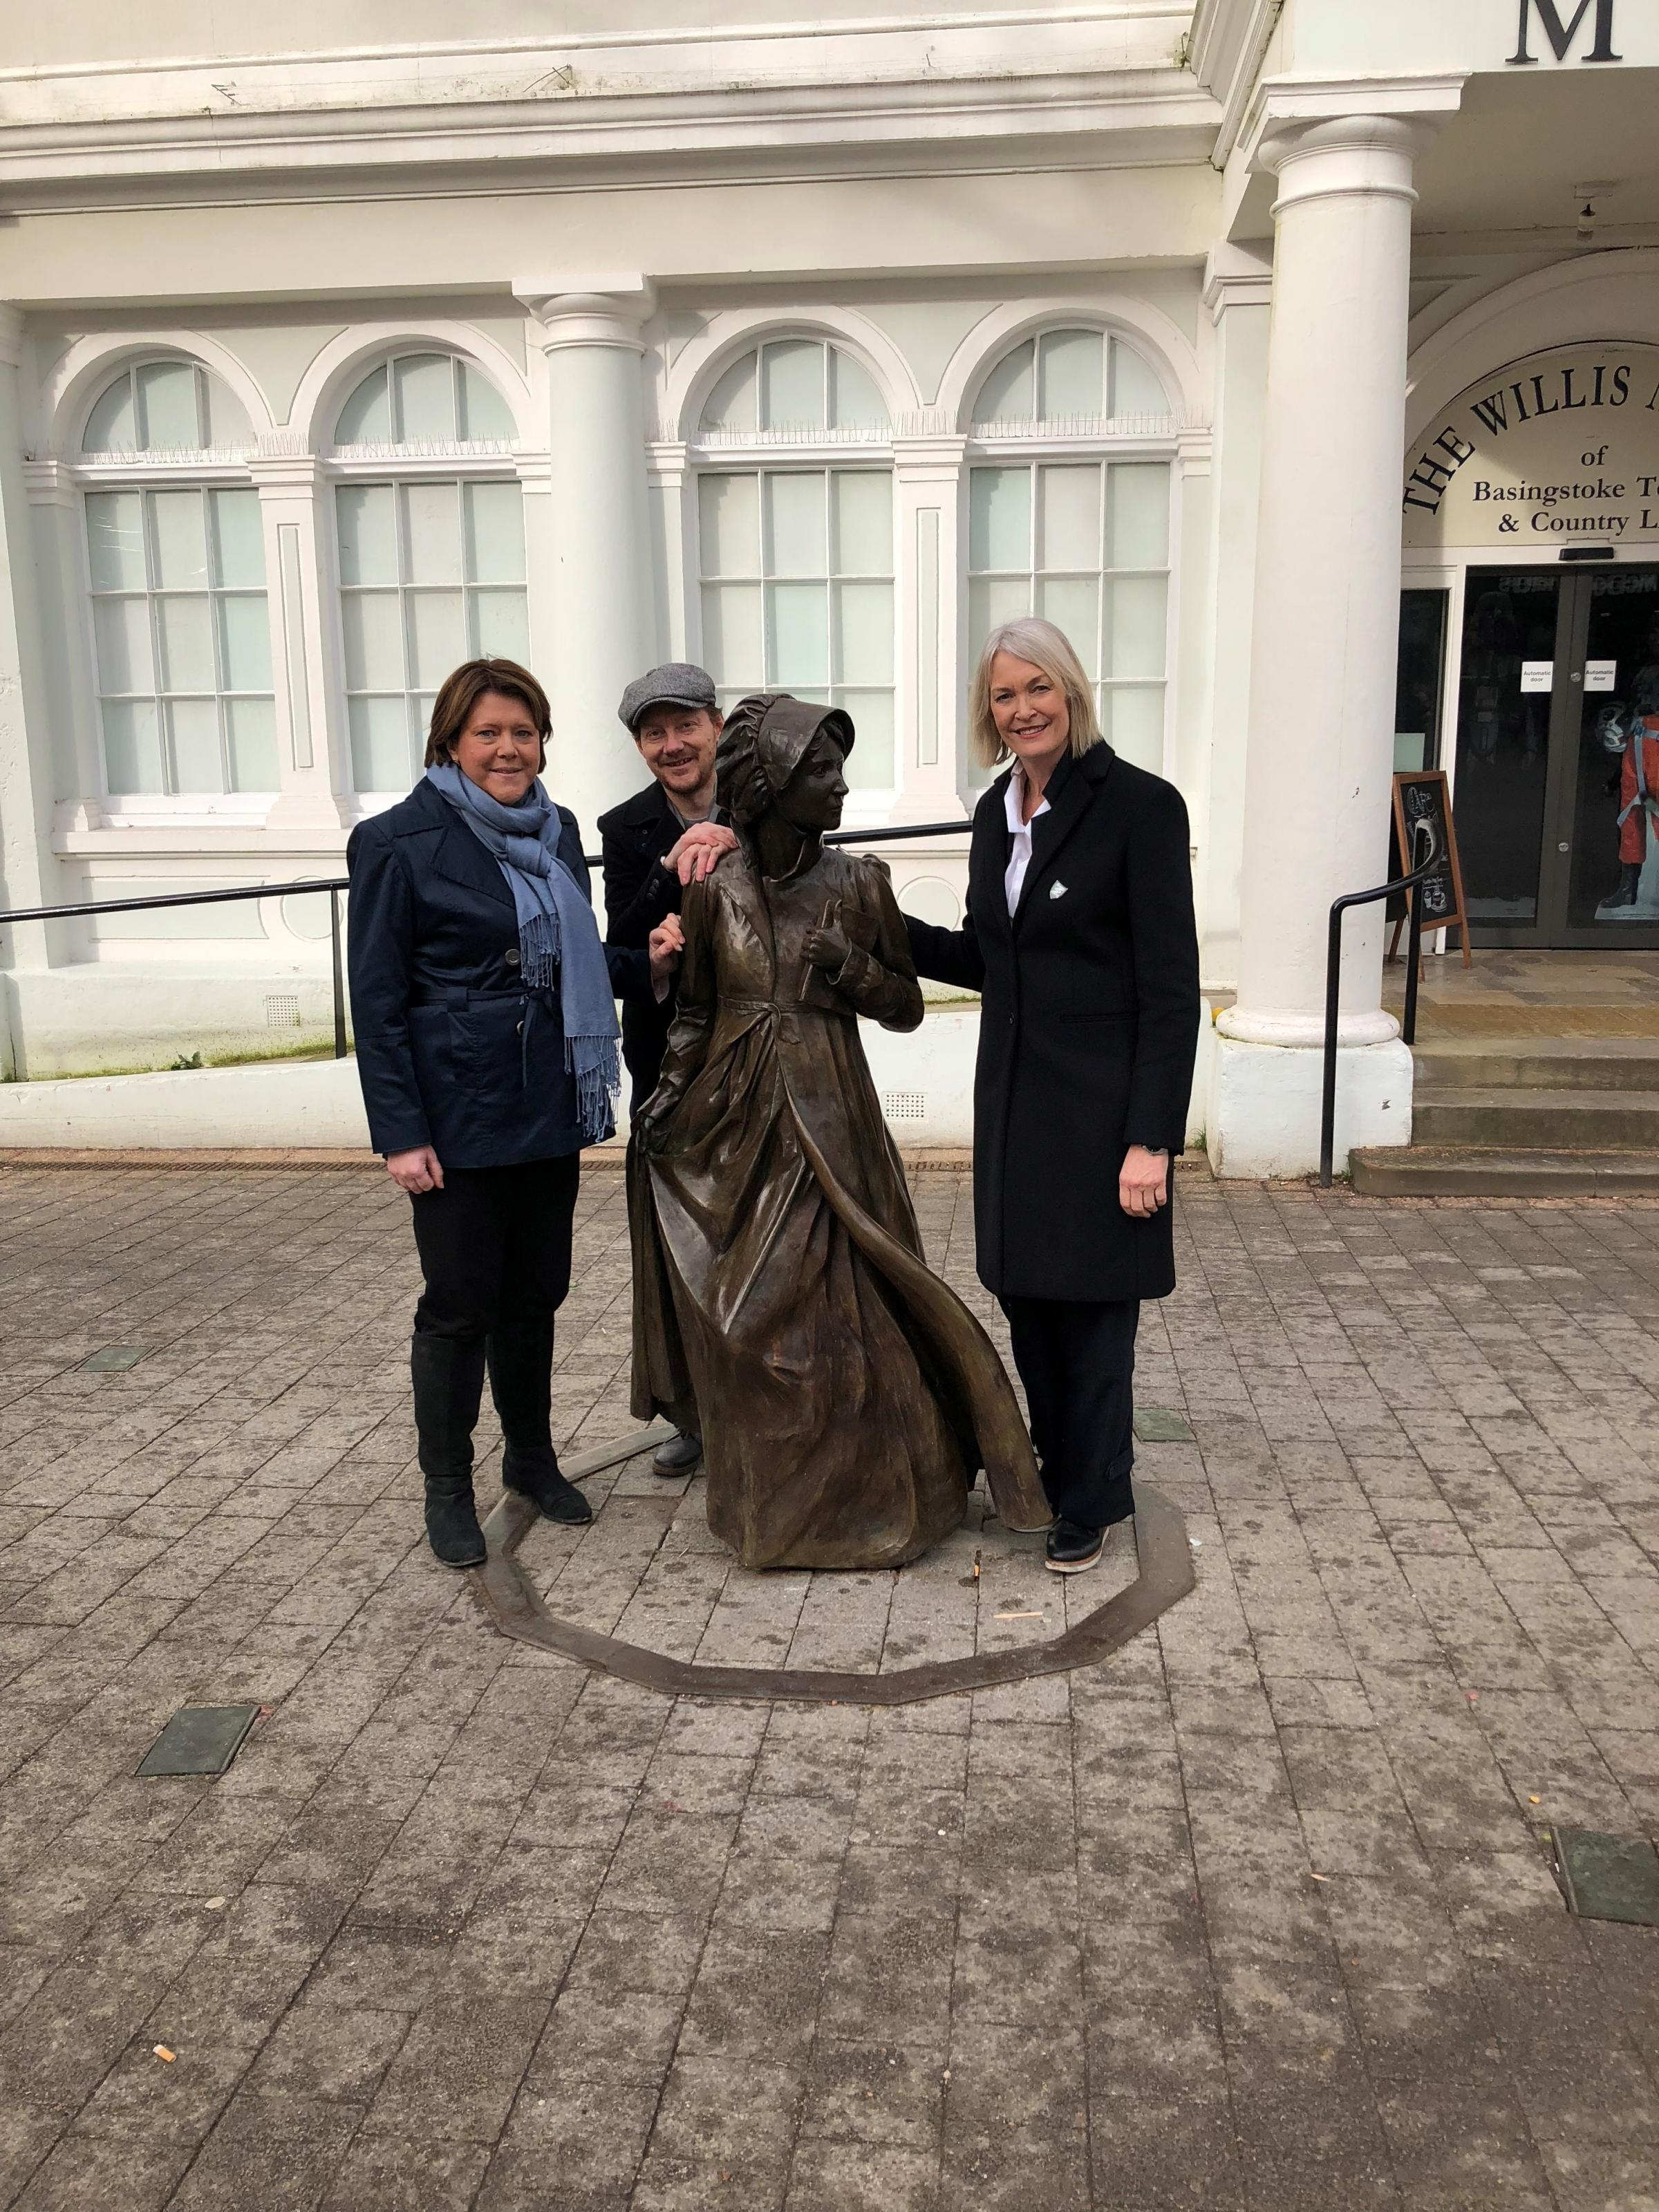 Maria Miller and Margot James with the statue